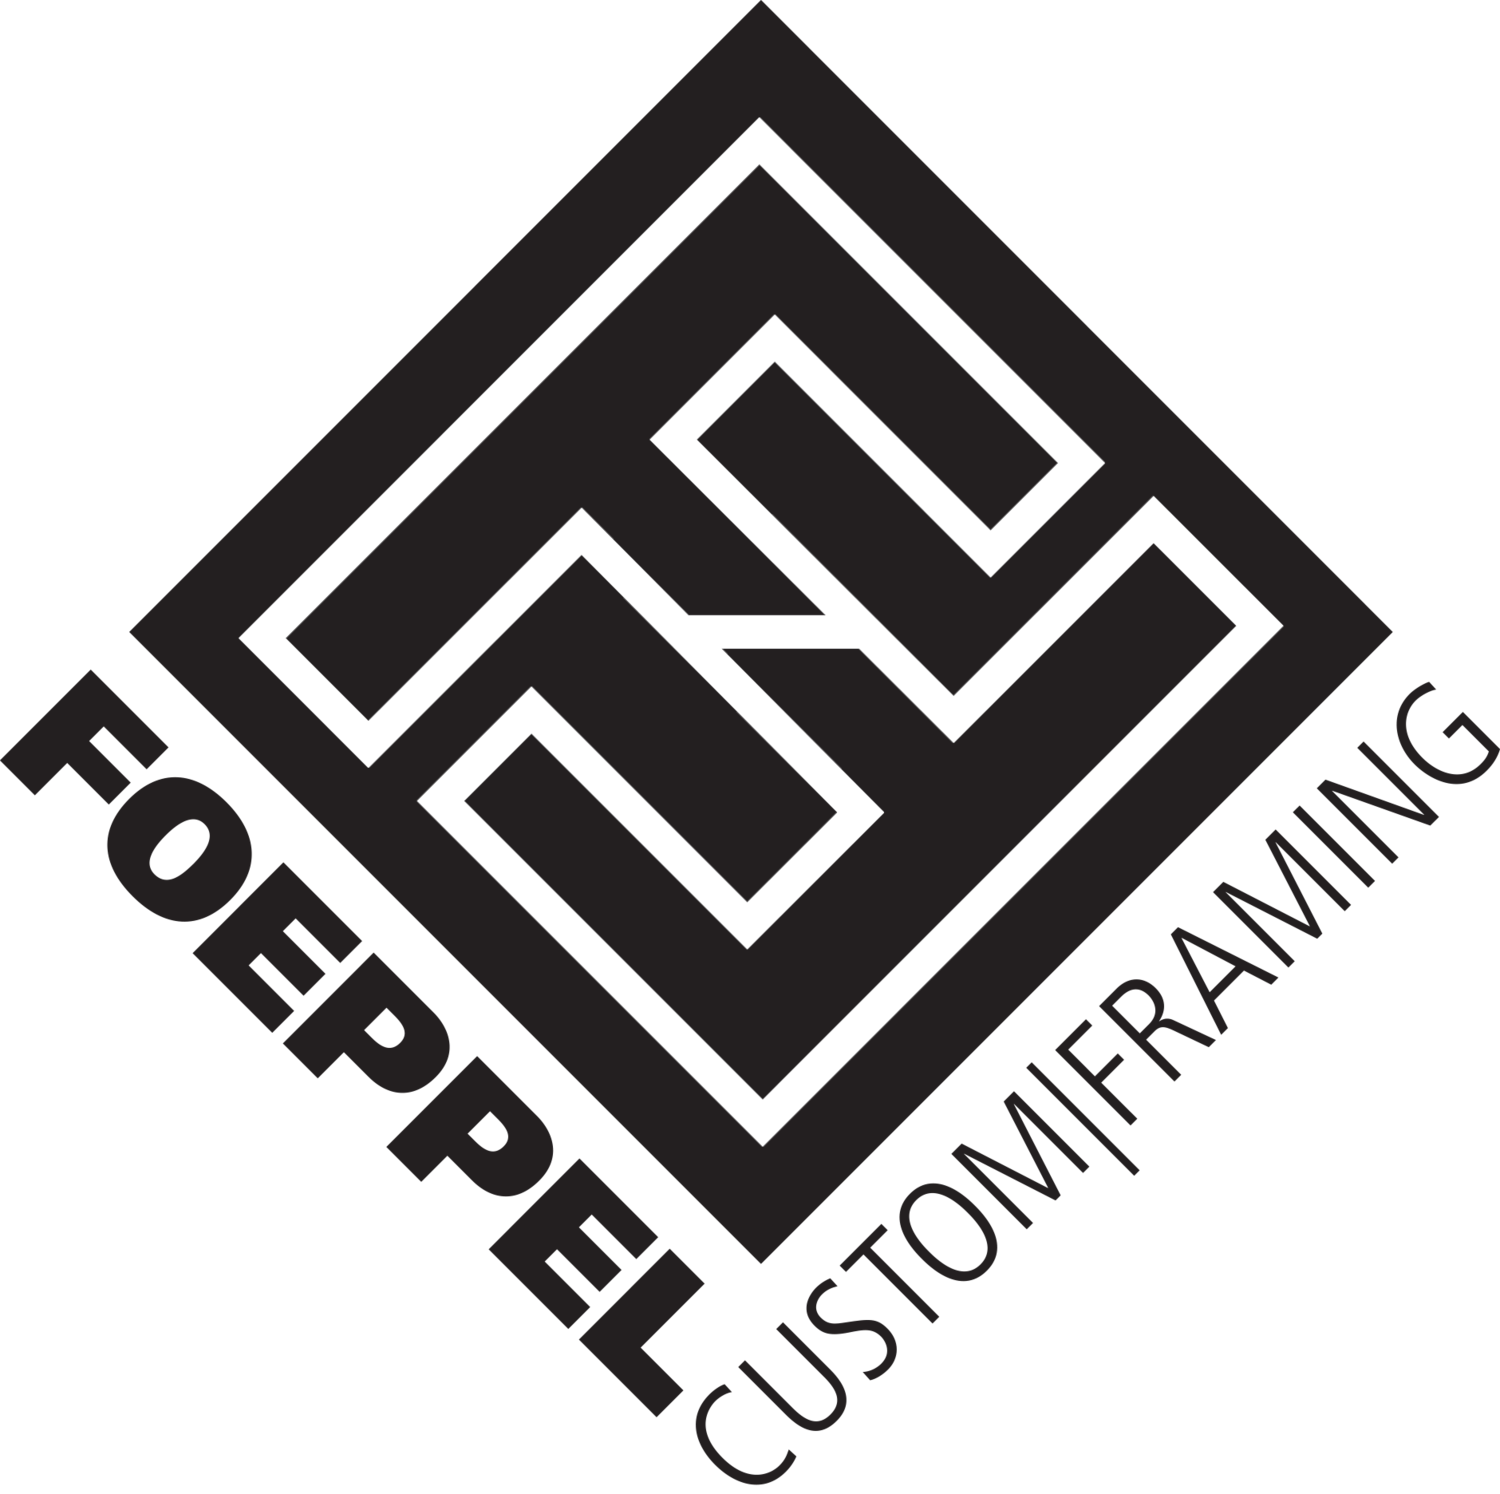 Foeppel Custom Framing